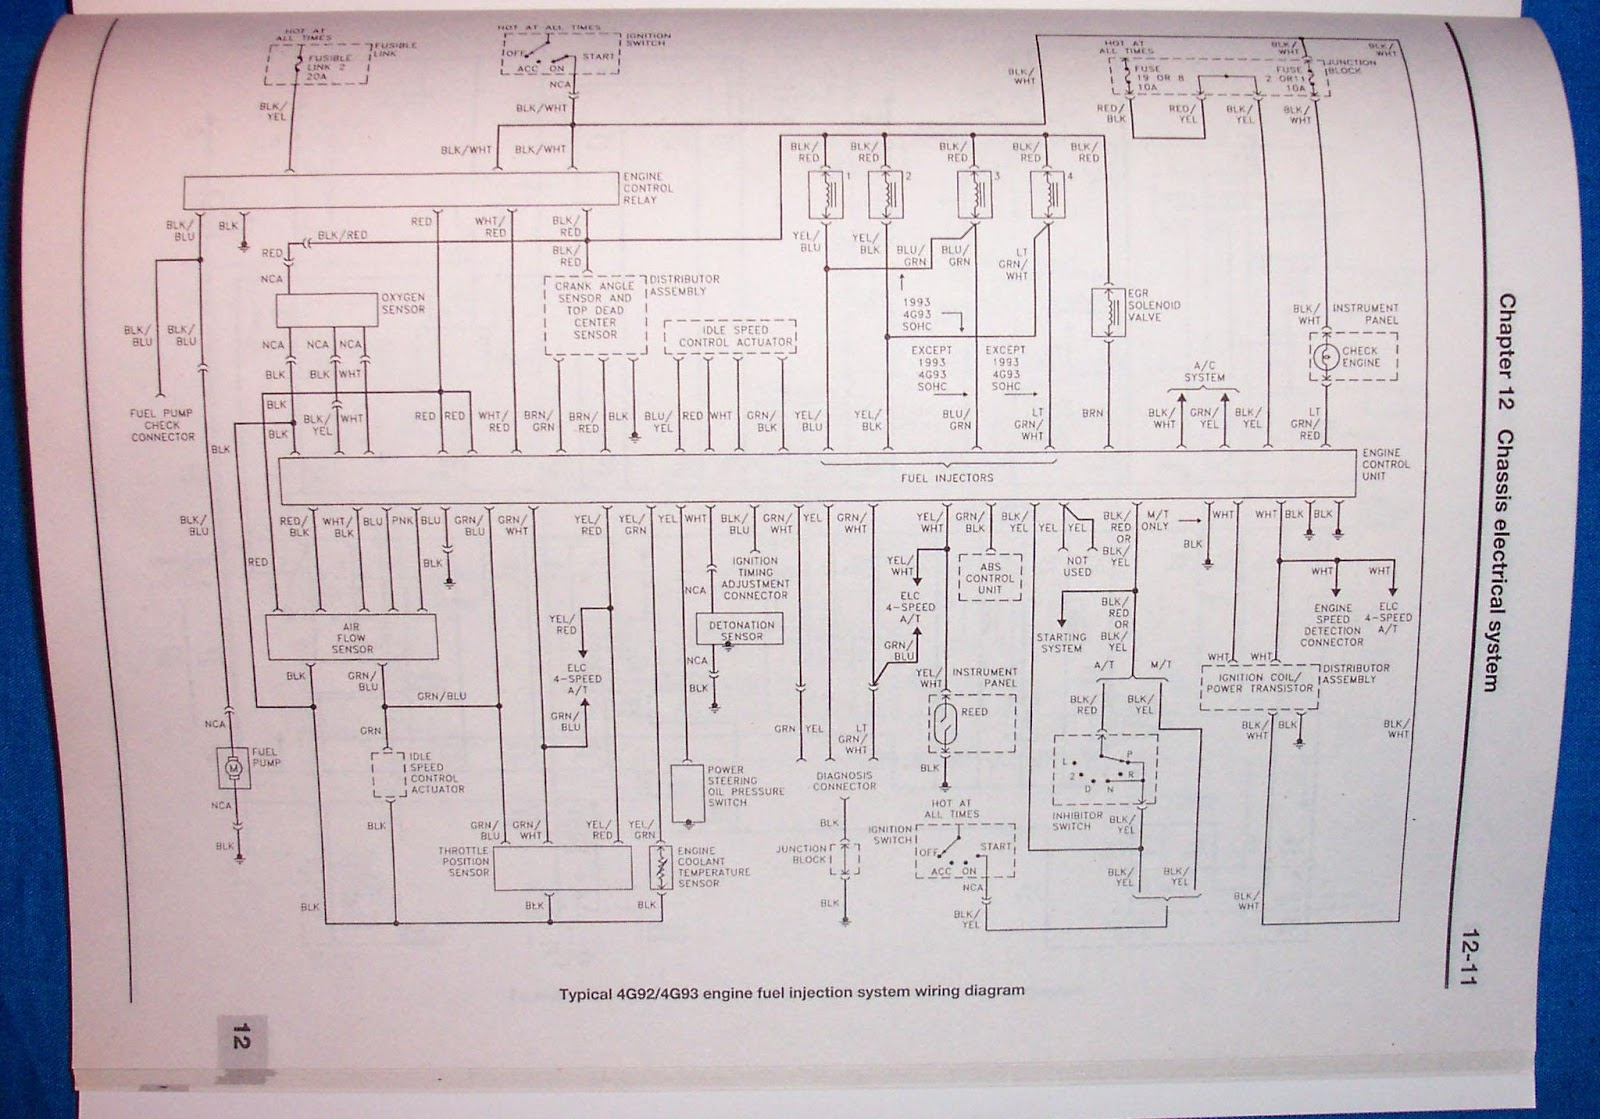 hight resolution of mitsubishi 4g92 engine diagram wiring diagram operations mitsubishi 4g92 engine diagram